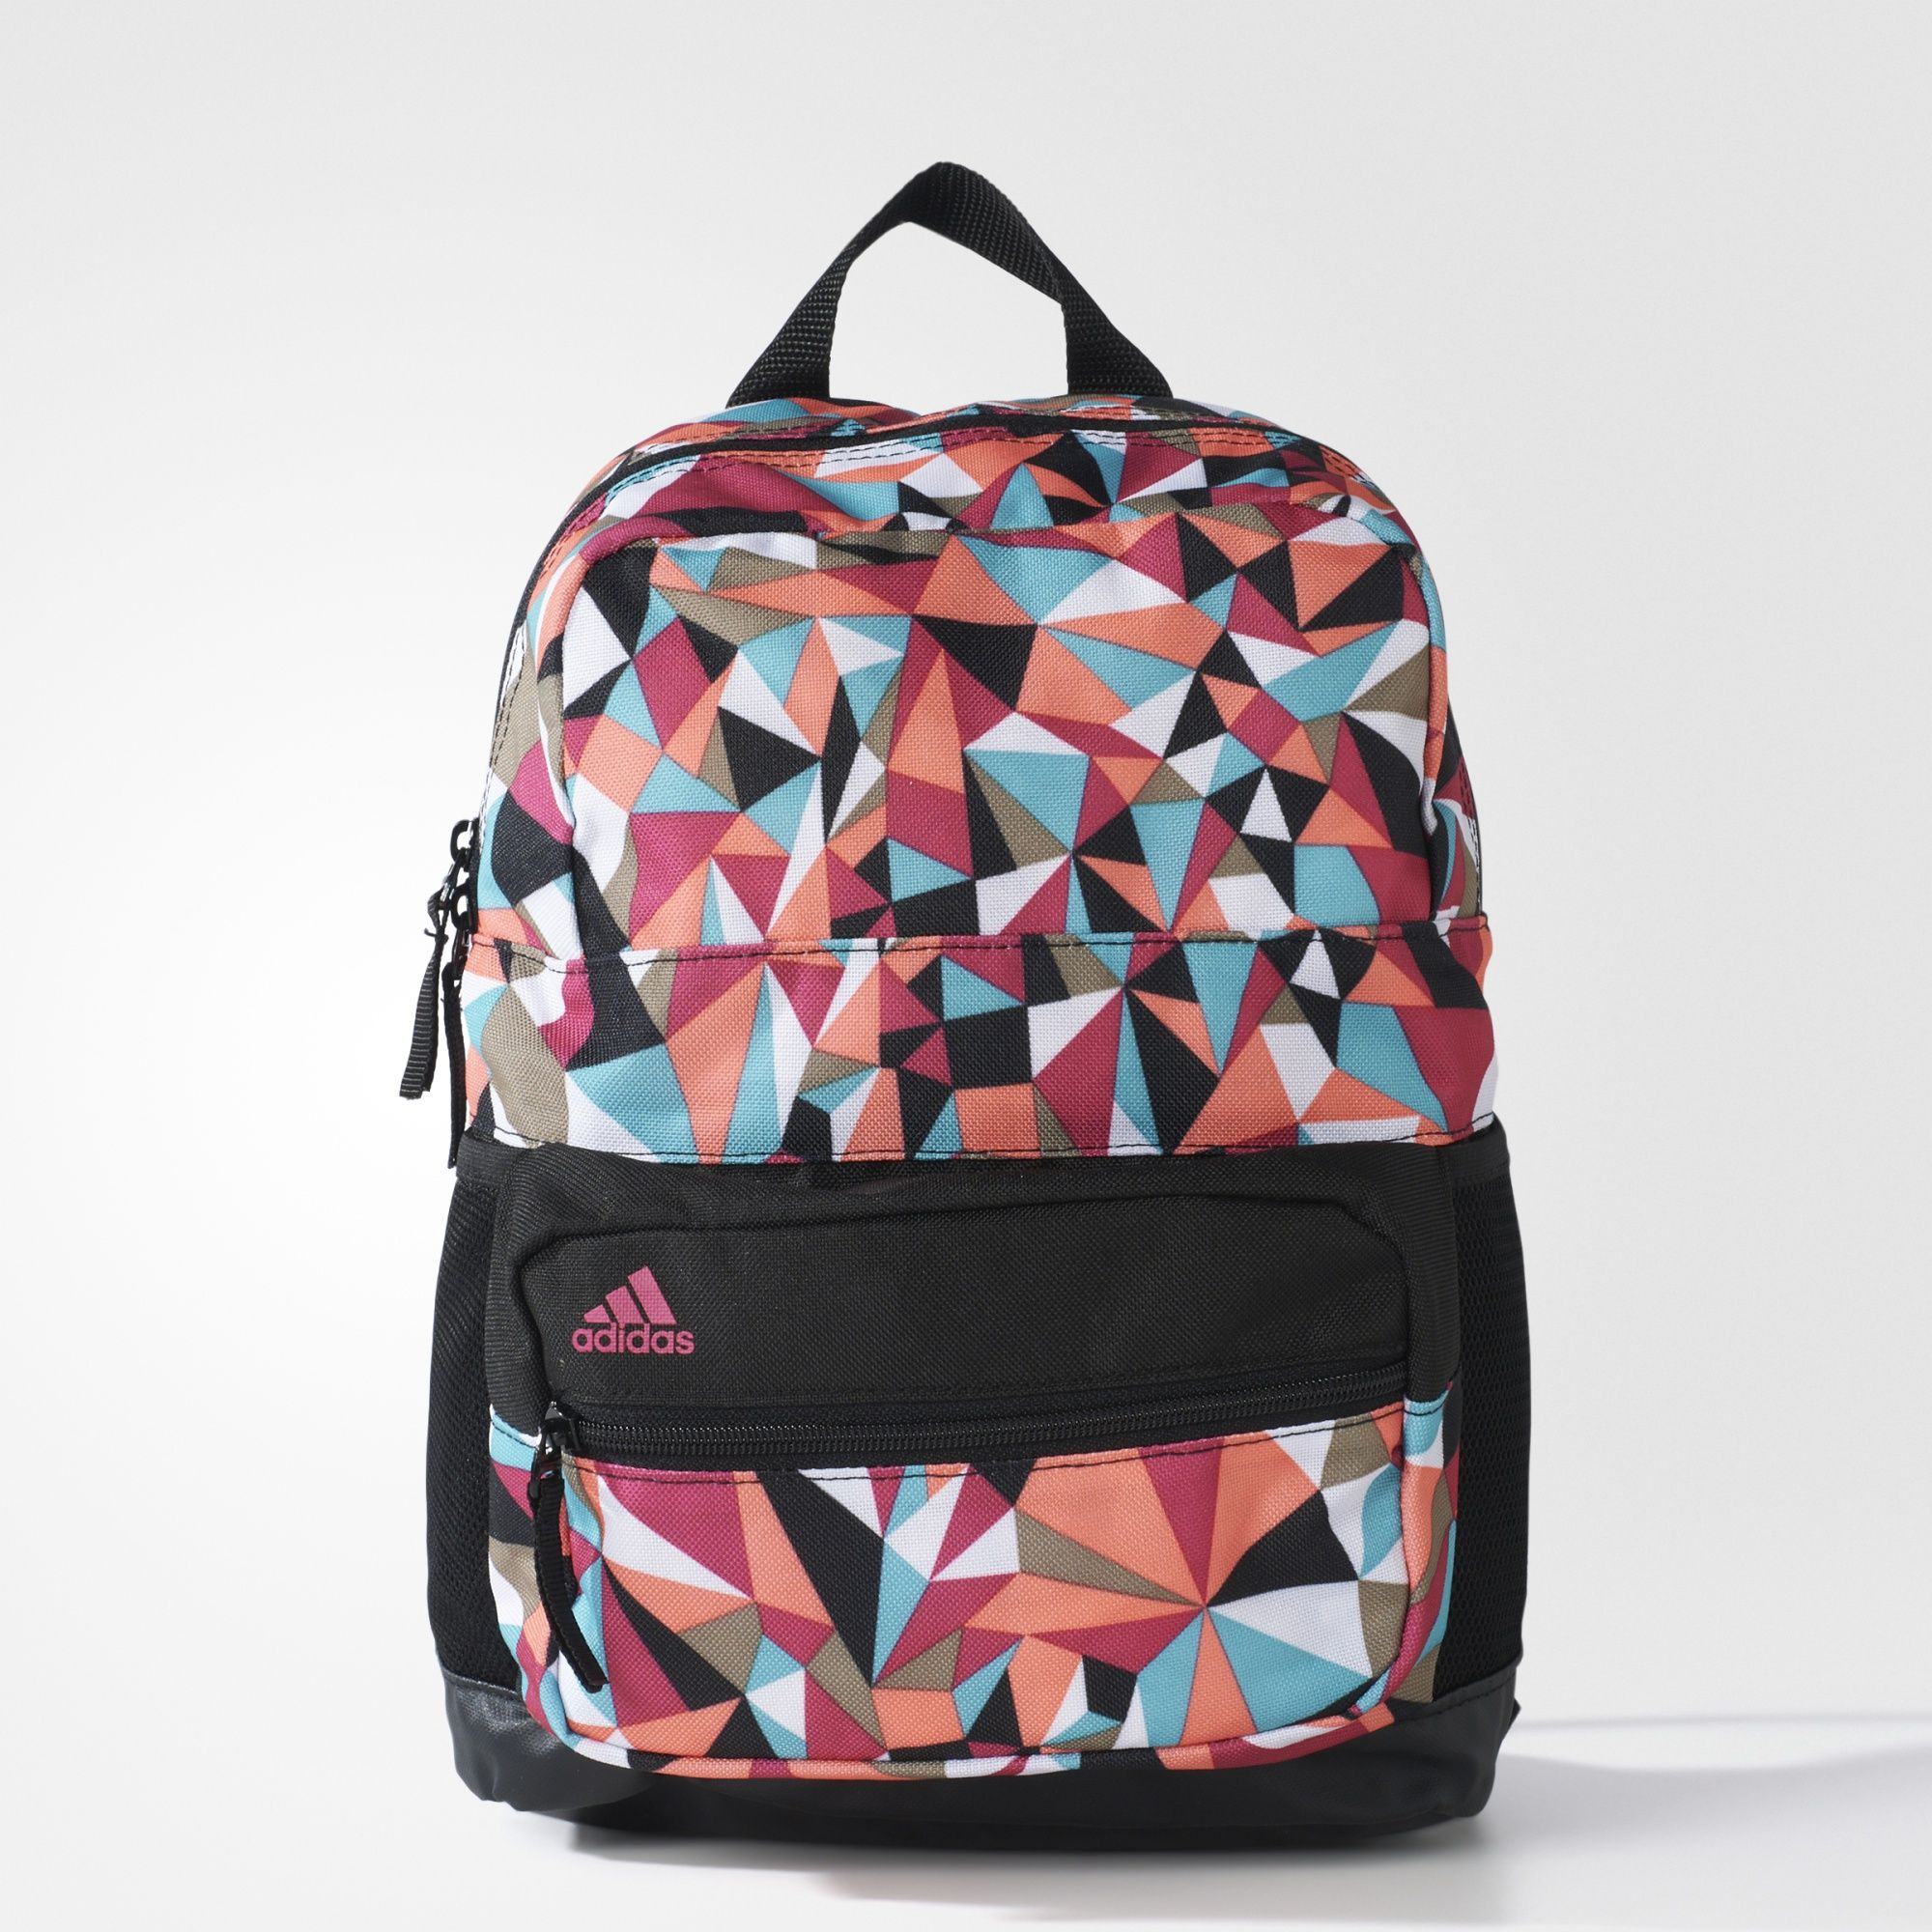 adidas graphic sport backpack extra small black adidas uk